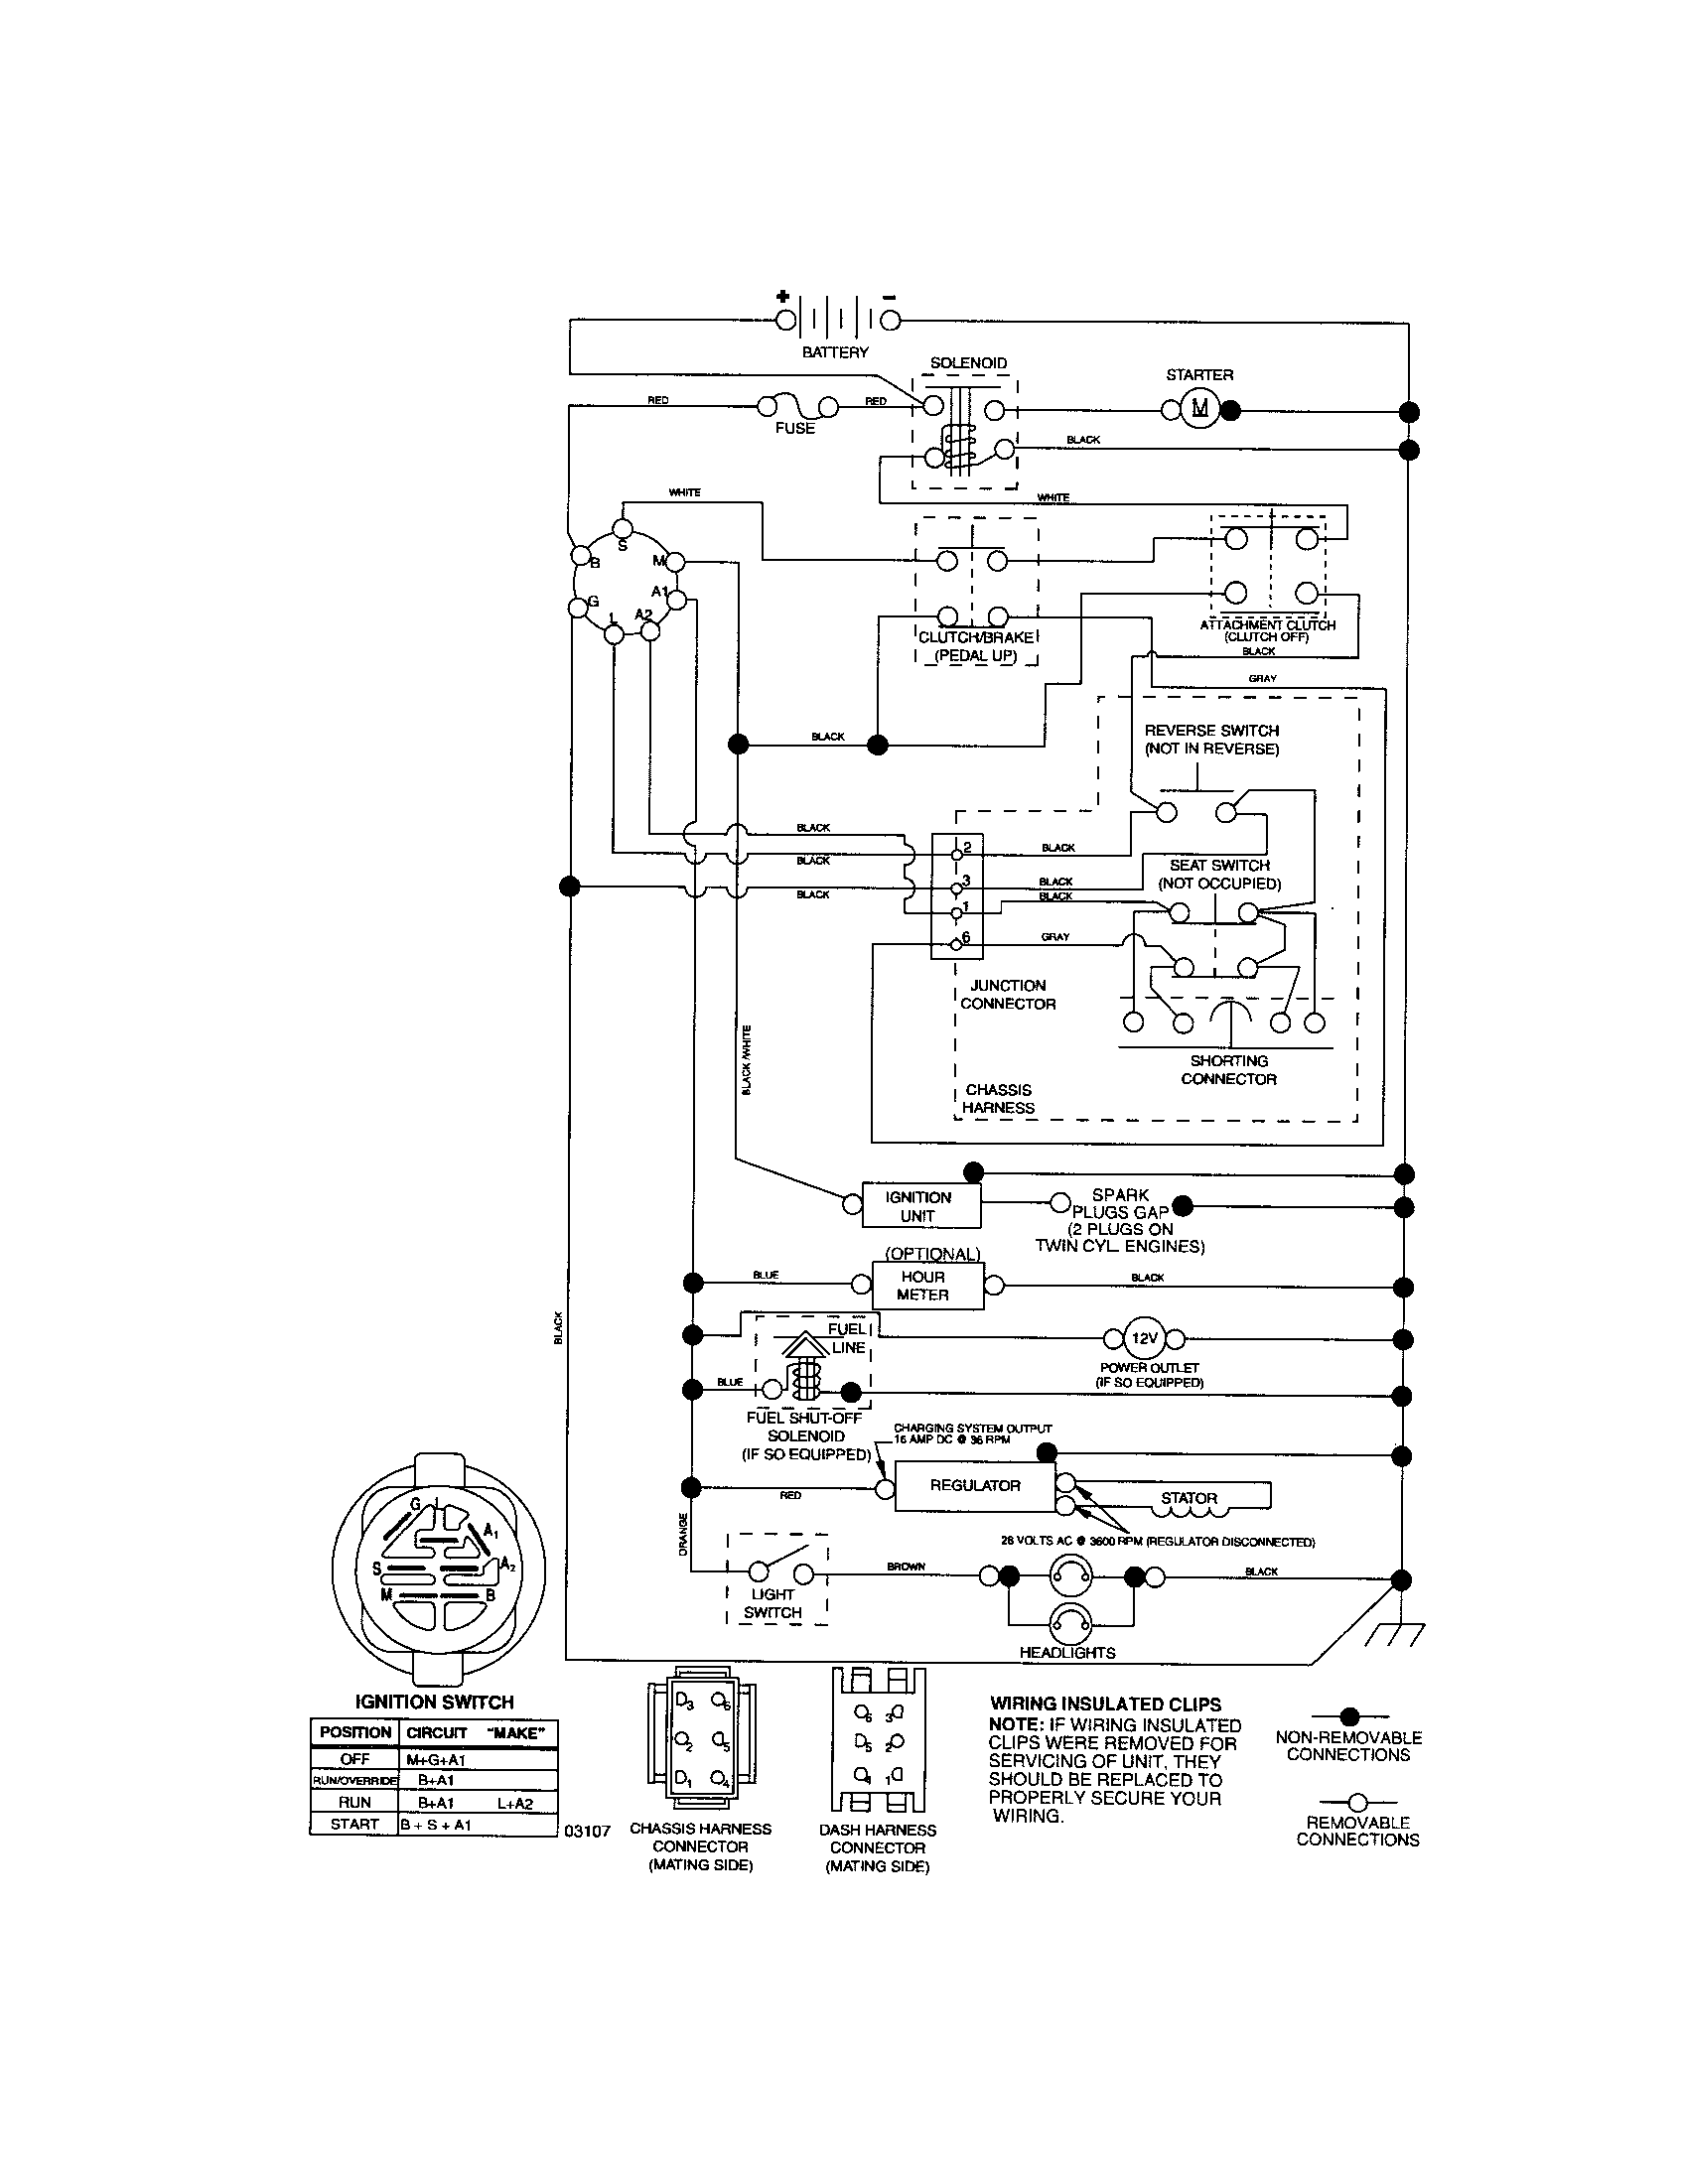 hight resolution of dgs 6500 pto switch wiring diagram wiring diagrams scematic toggle switch wiring diagram pto rocker switch wiring diagram